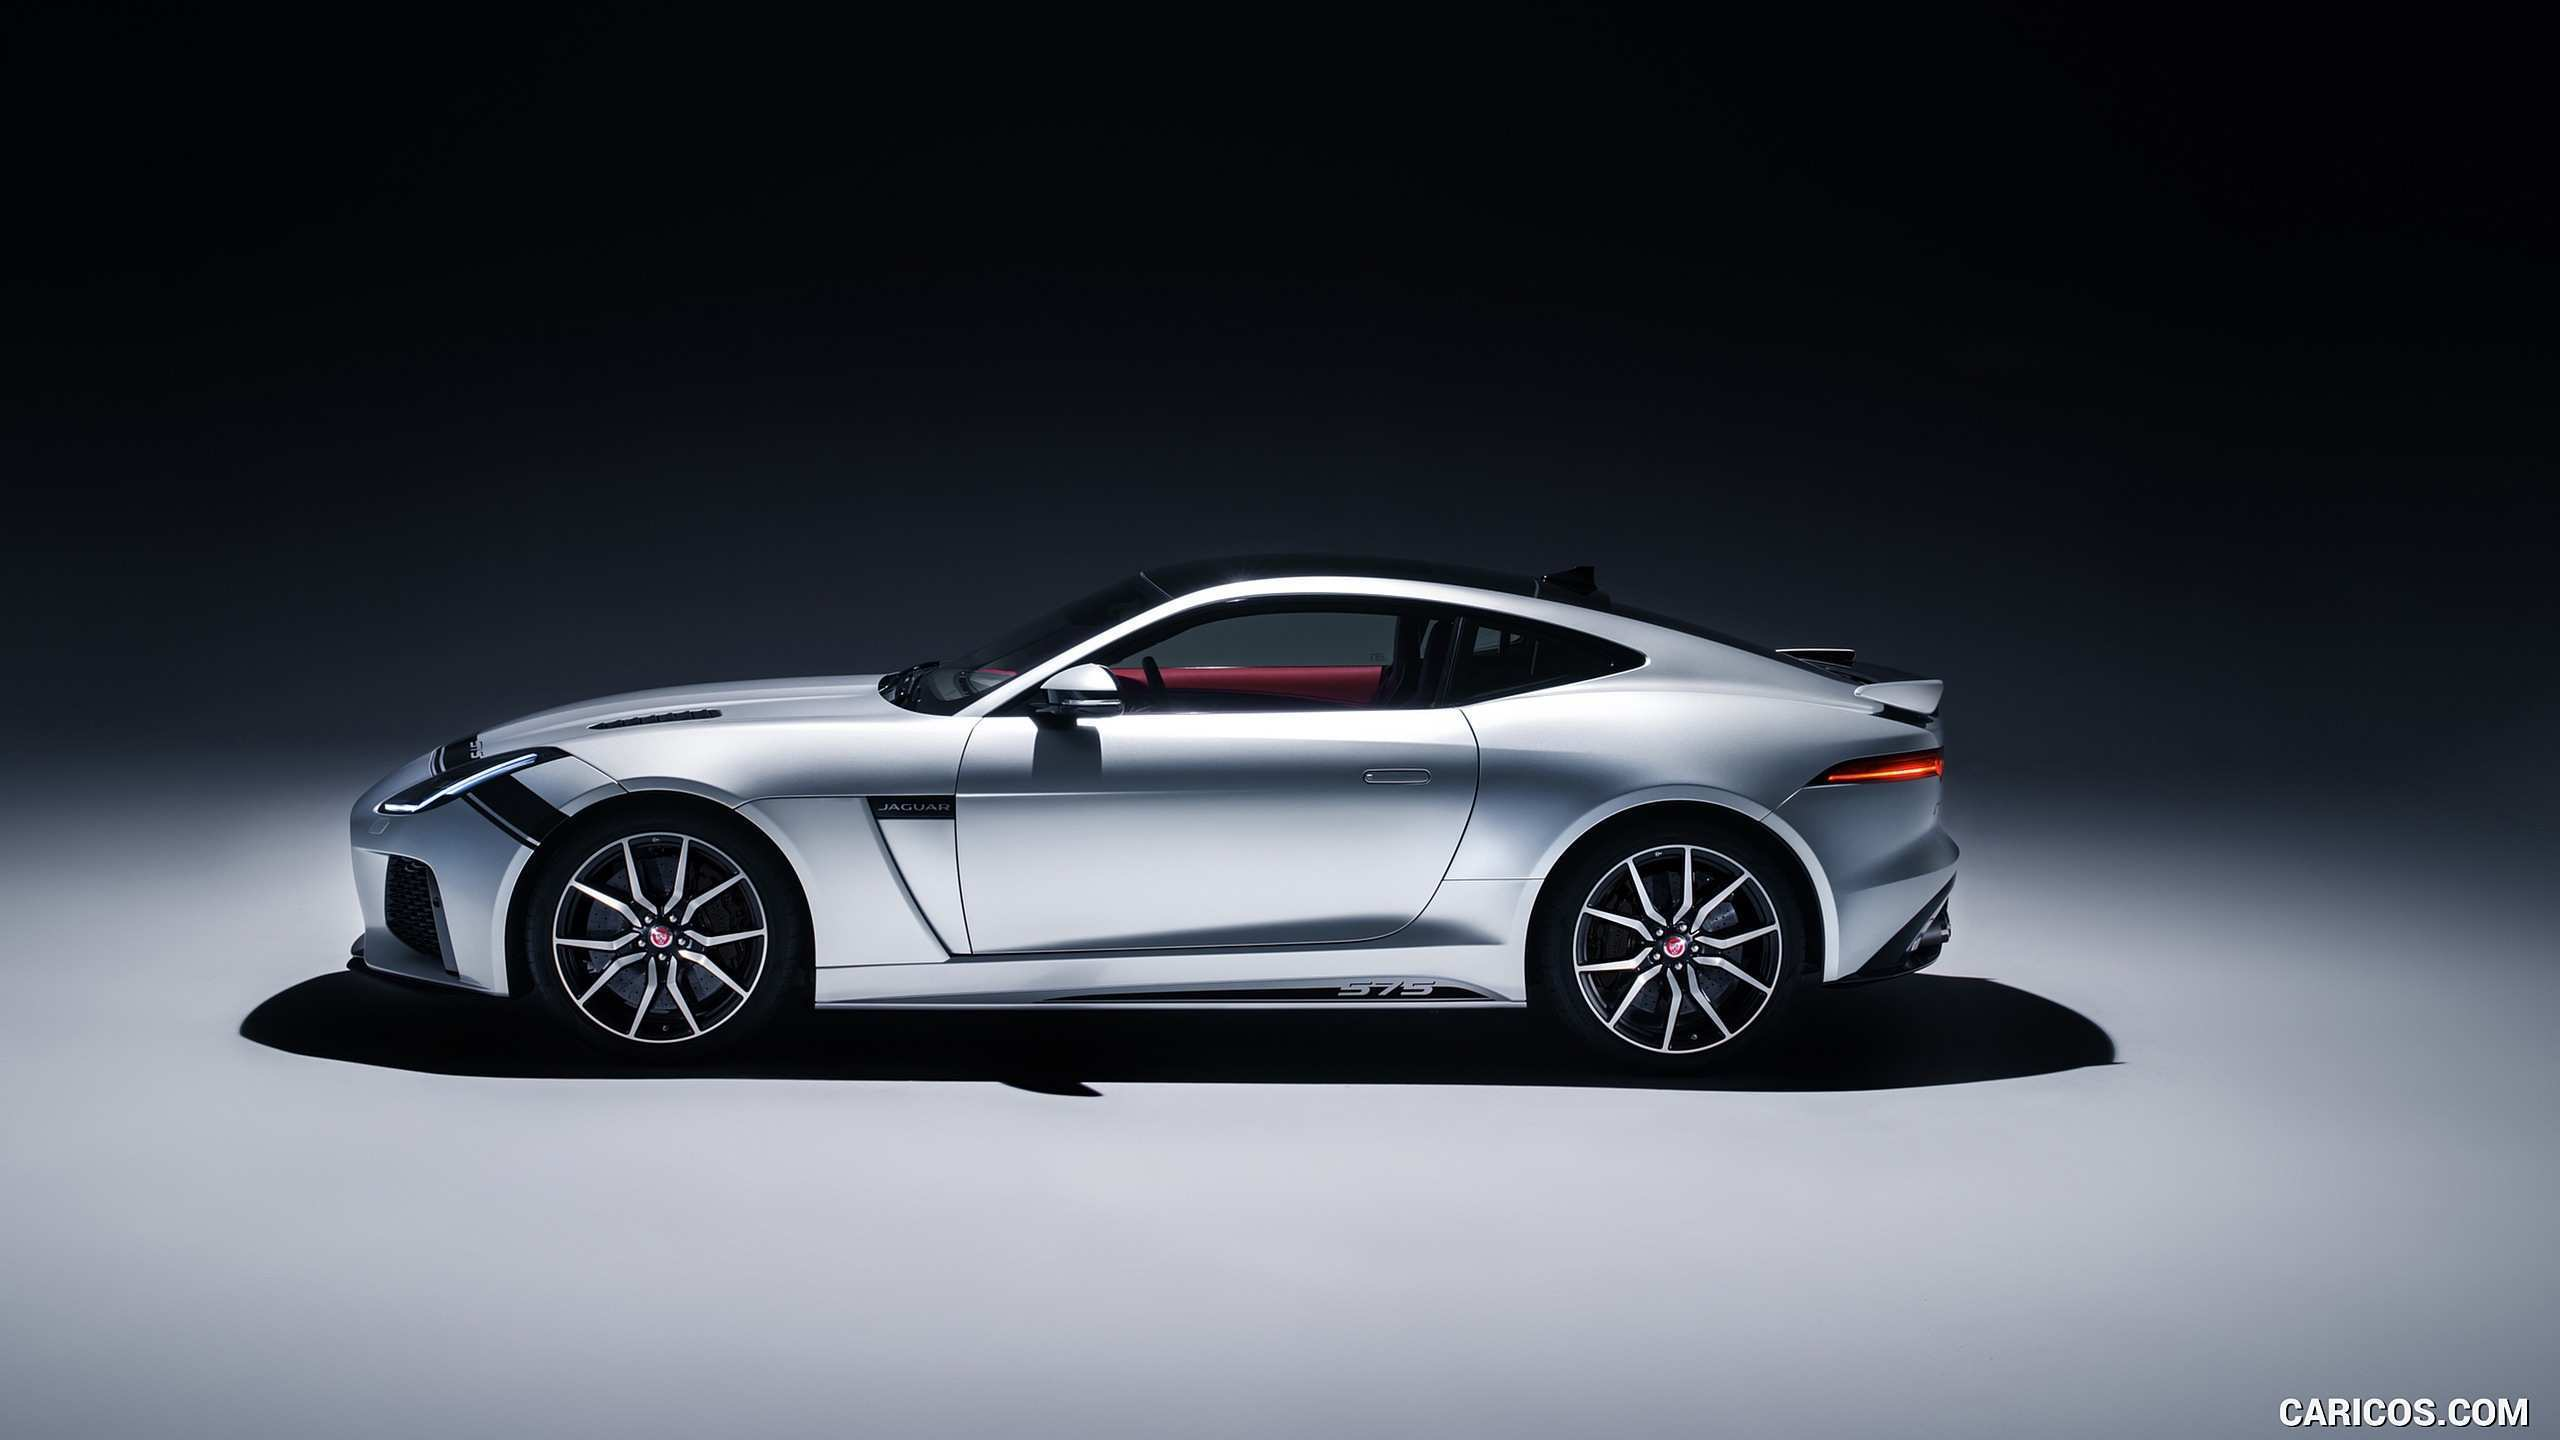 78 New Best 2019 Jaguar F Type Release Date Review And Release Date New Concept for Best 2019 Jaguar F Type Release Date Review And Release Date